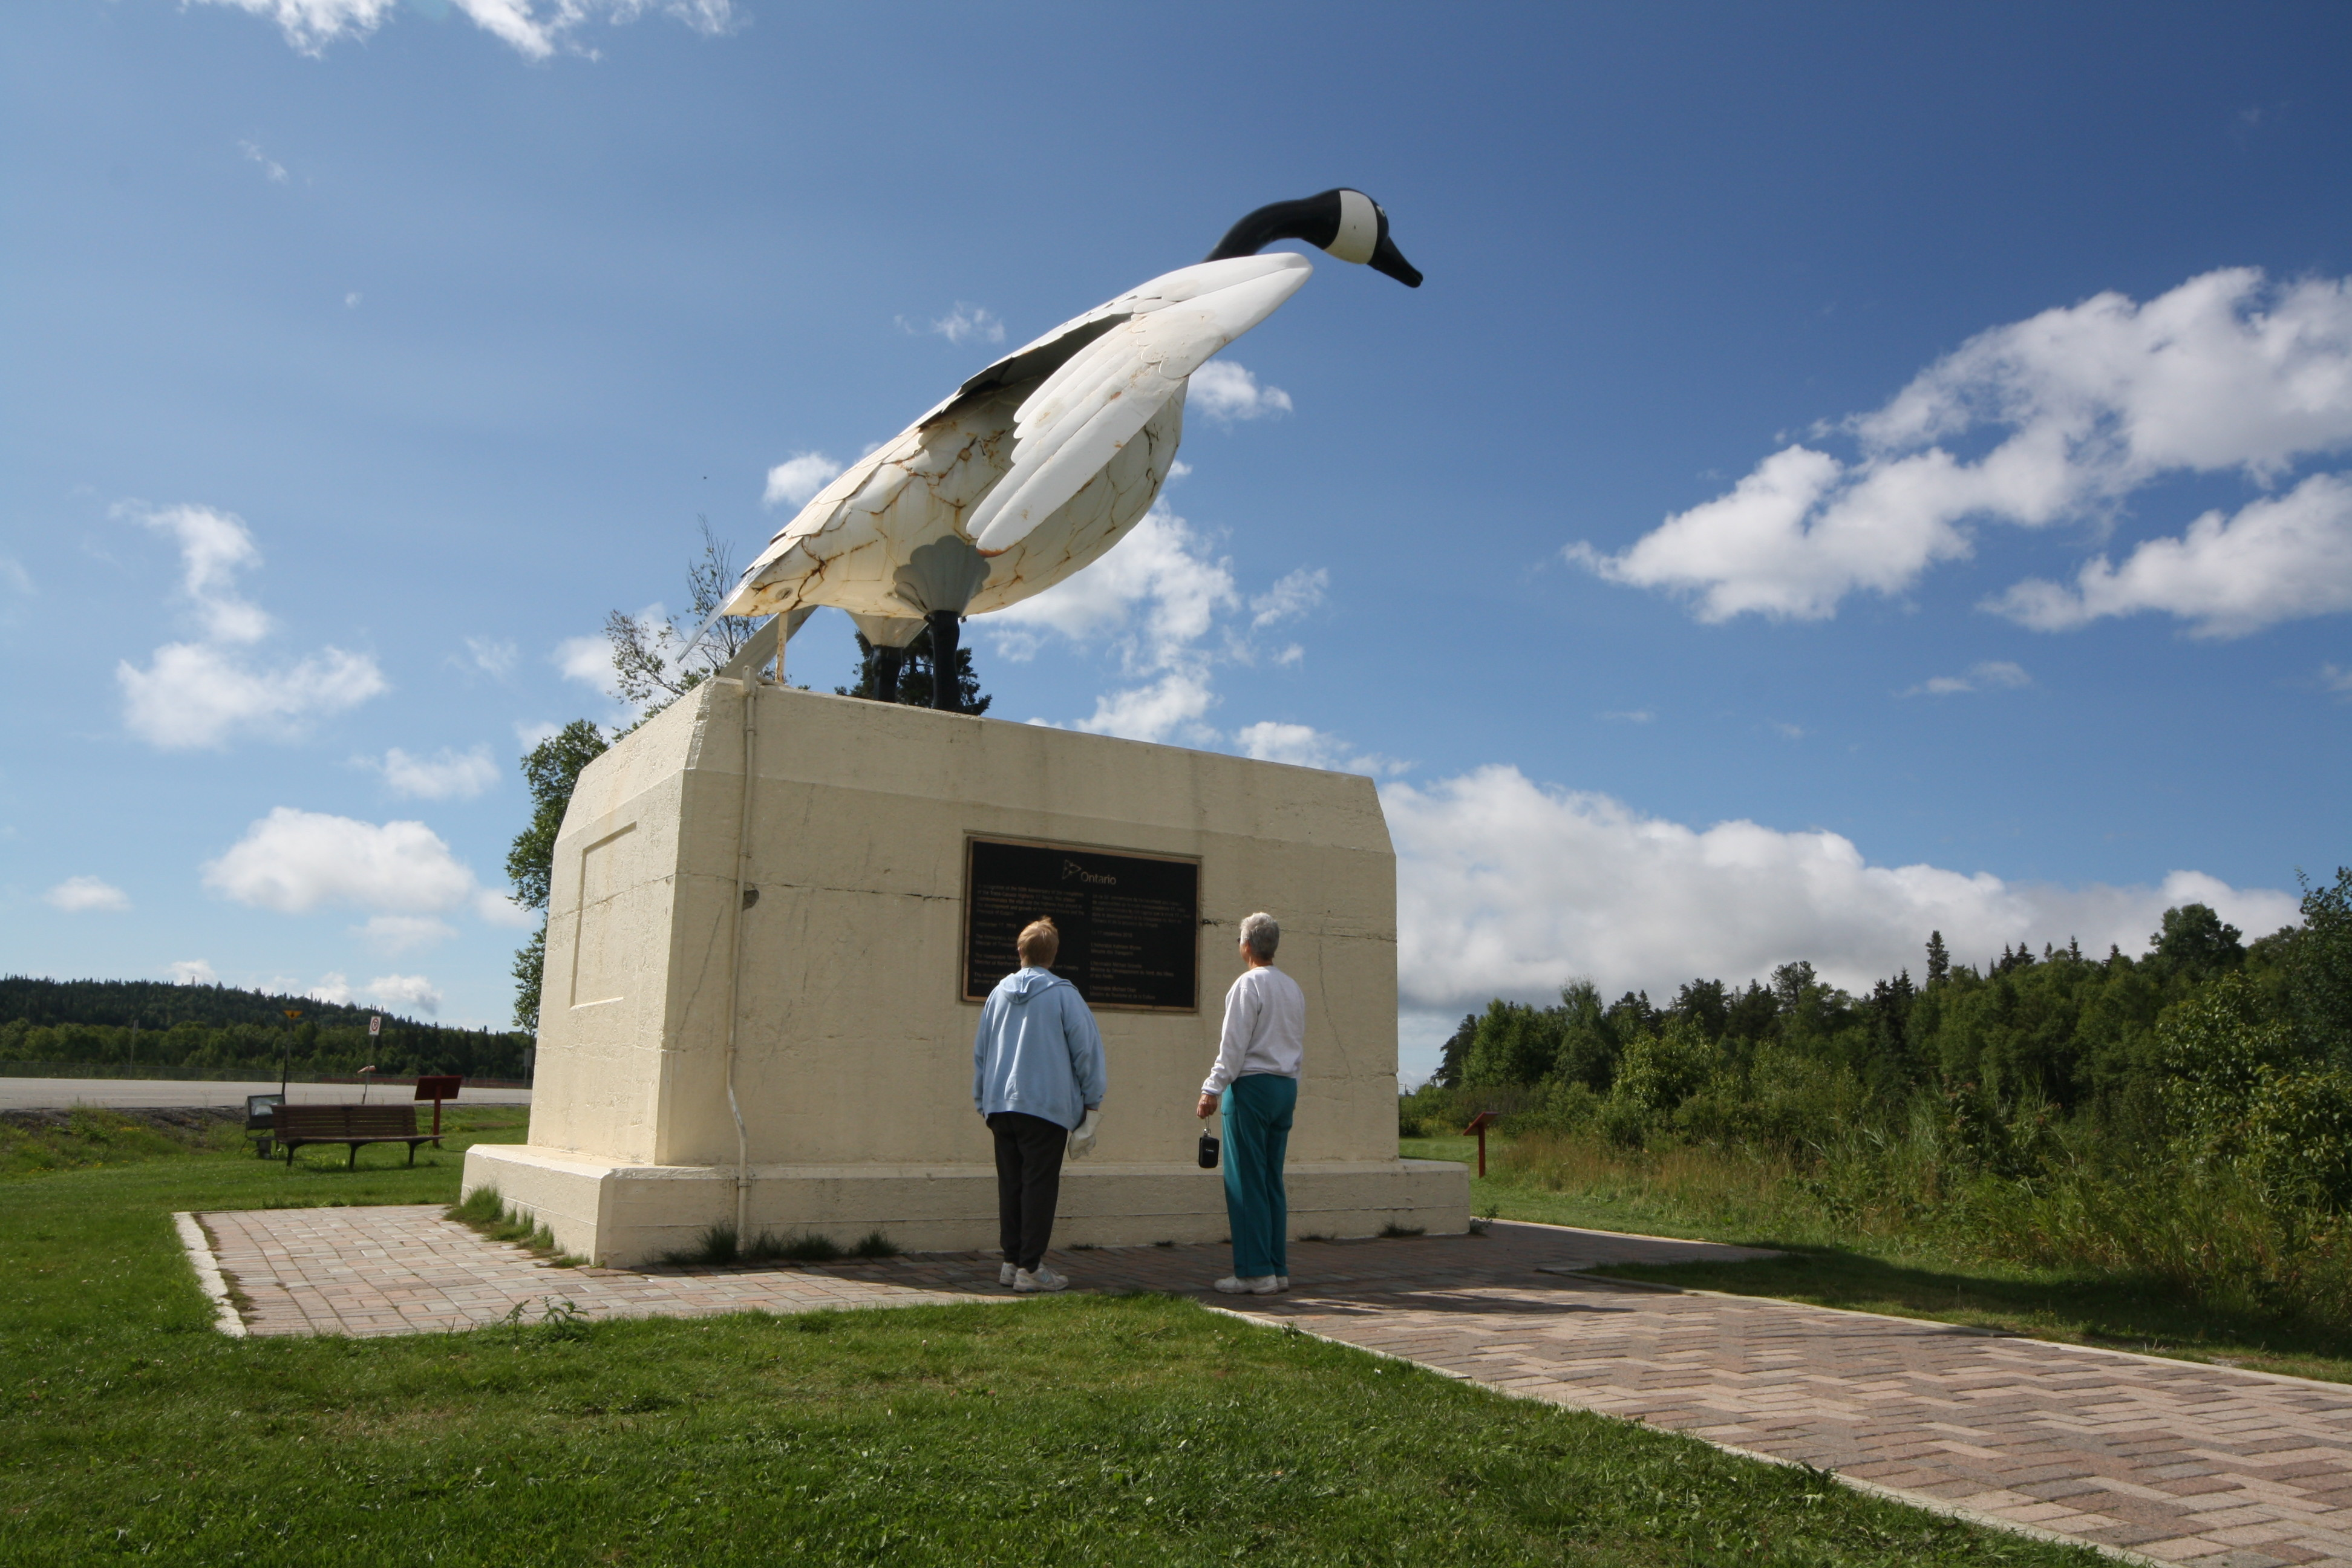 The Wawa Goose is one of Ontario's most iconic sights. Last I heard they were still trying to raise money to fix her up. JIM BYERS PHOTO